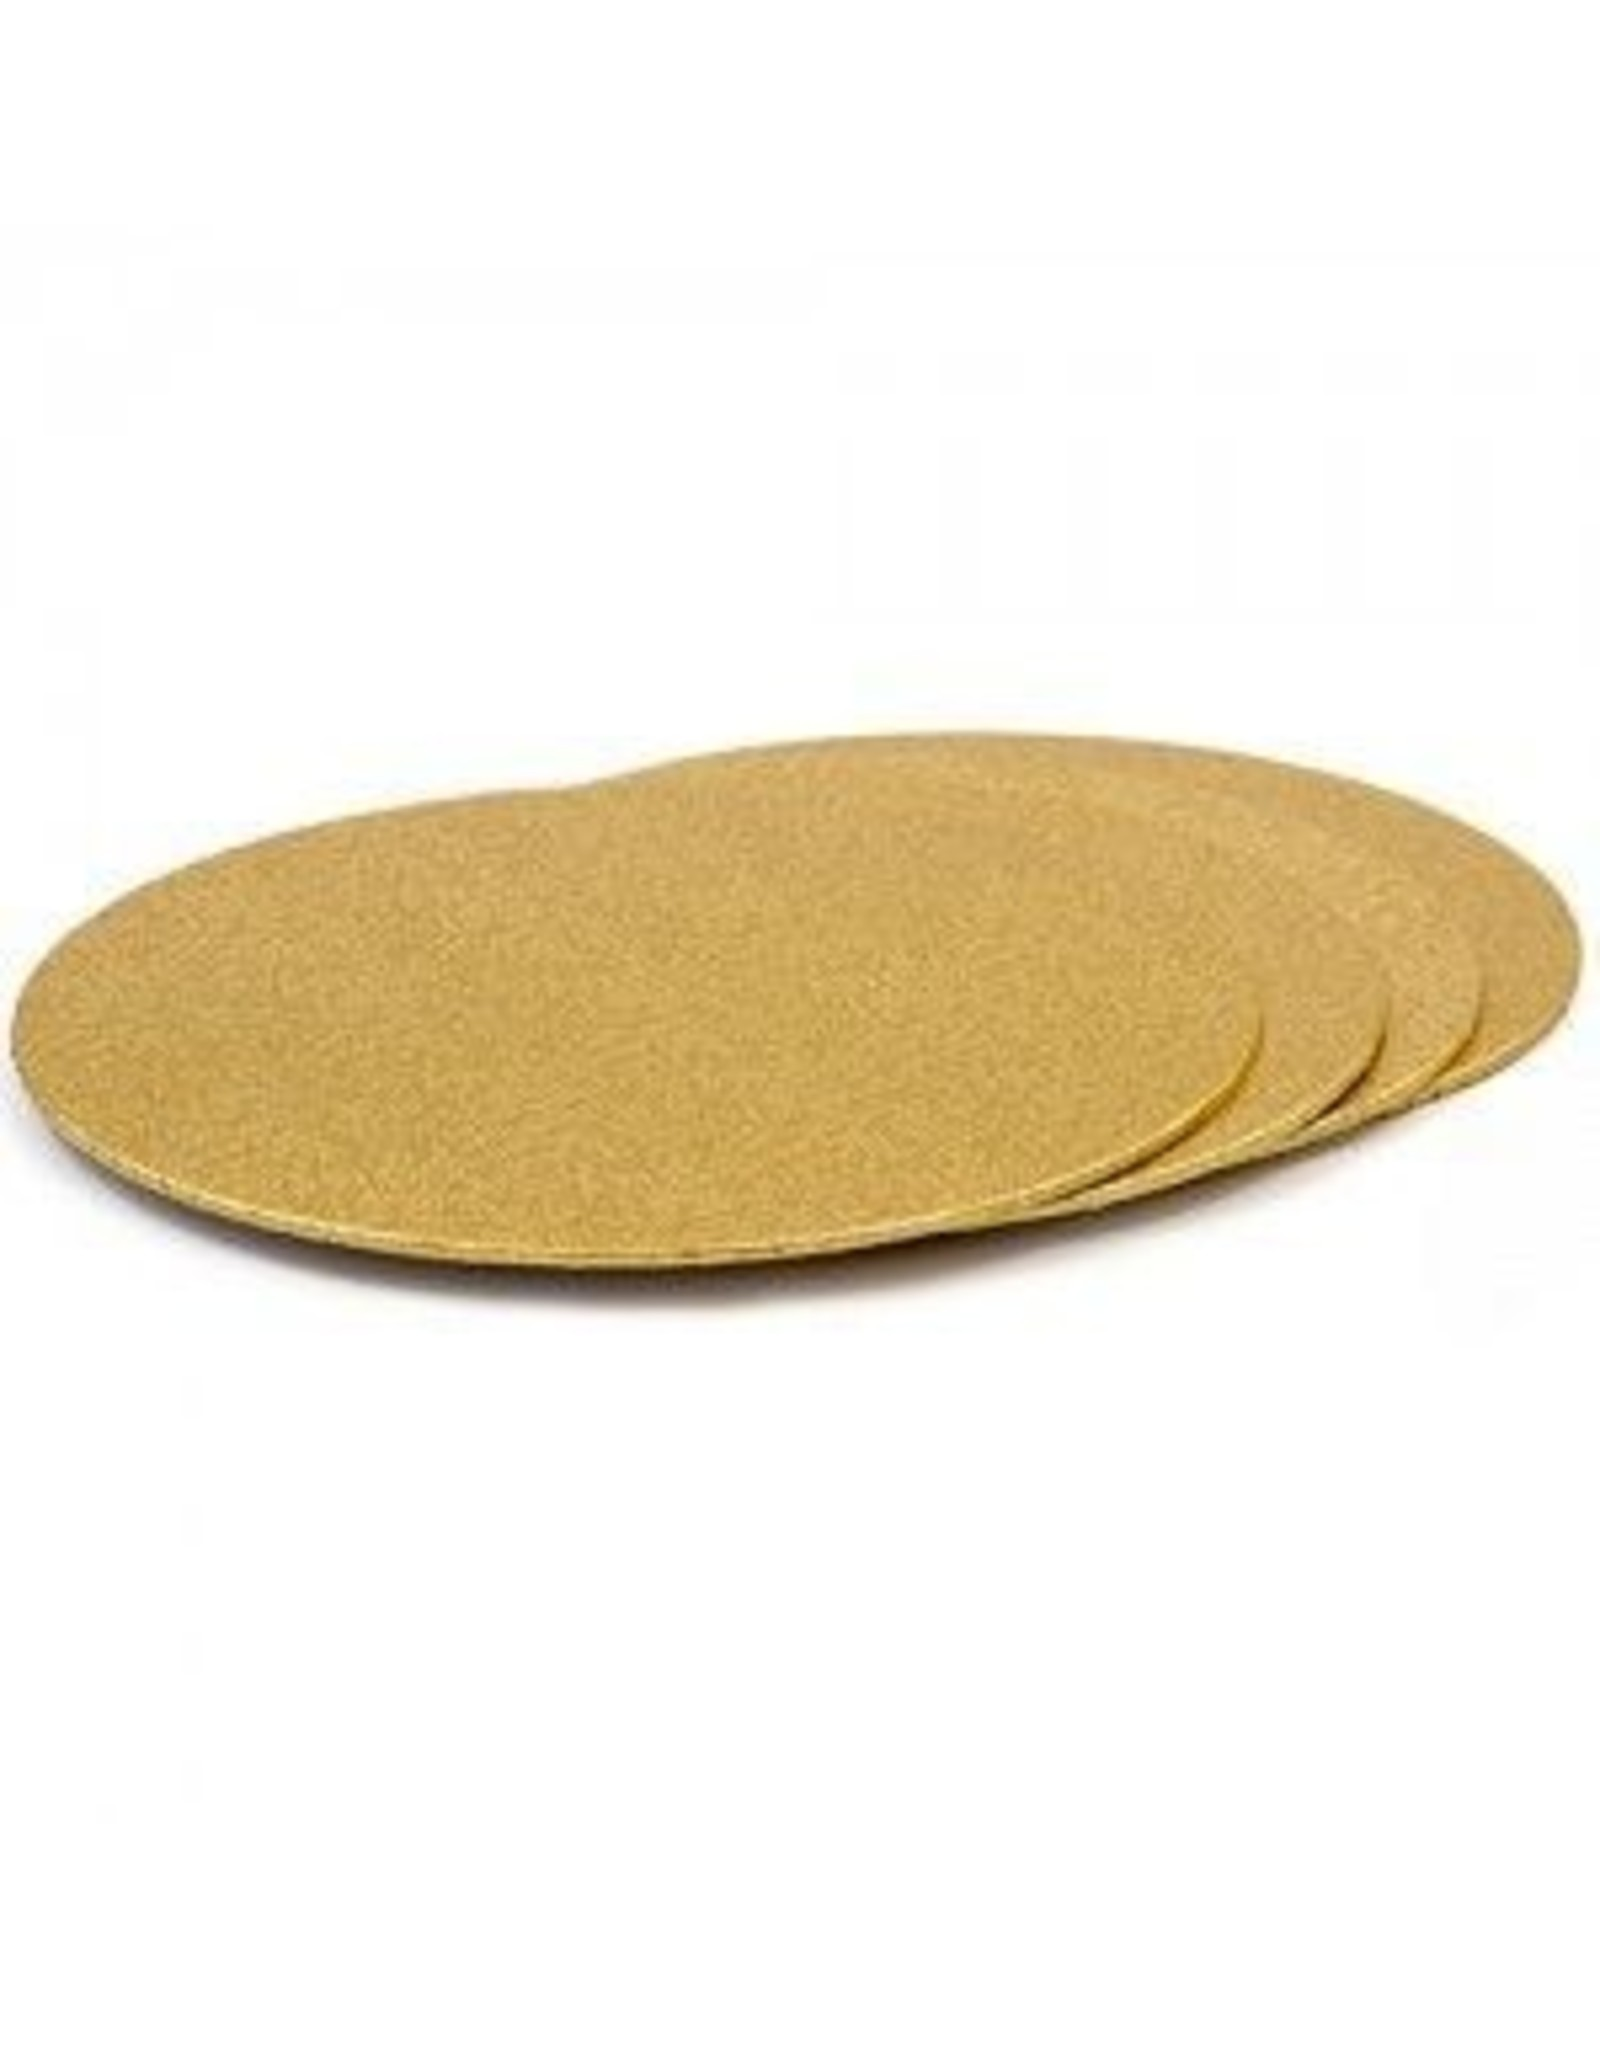 Cakeboards Ø203 mm - gold (per 10 pieces)